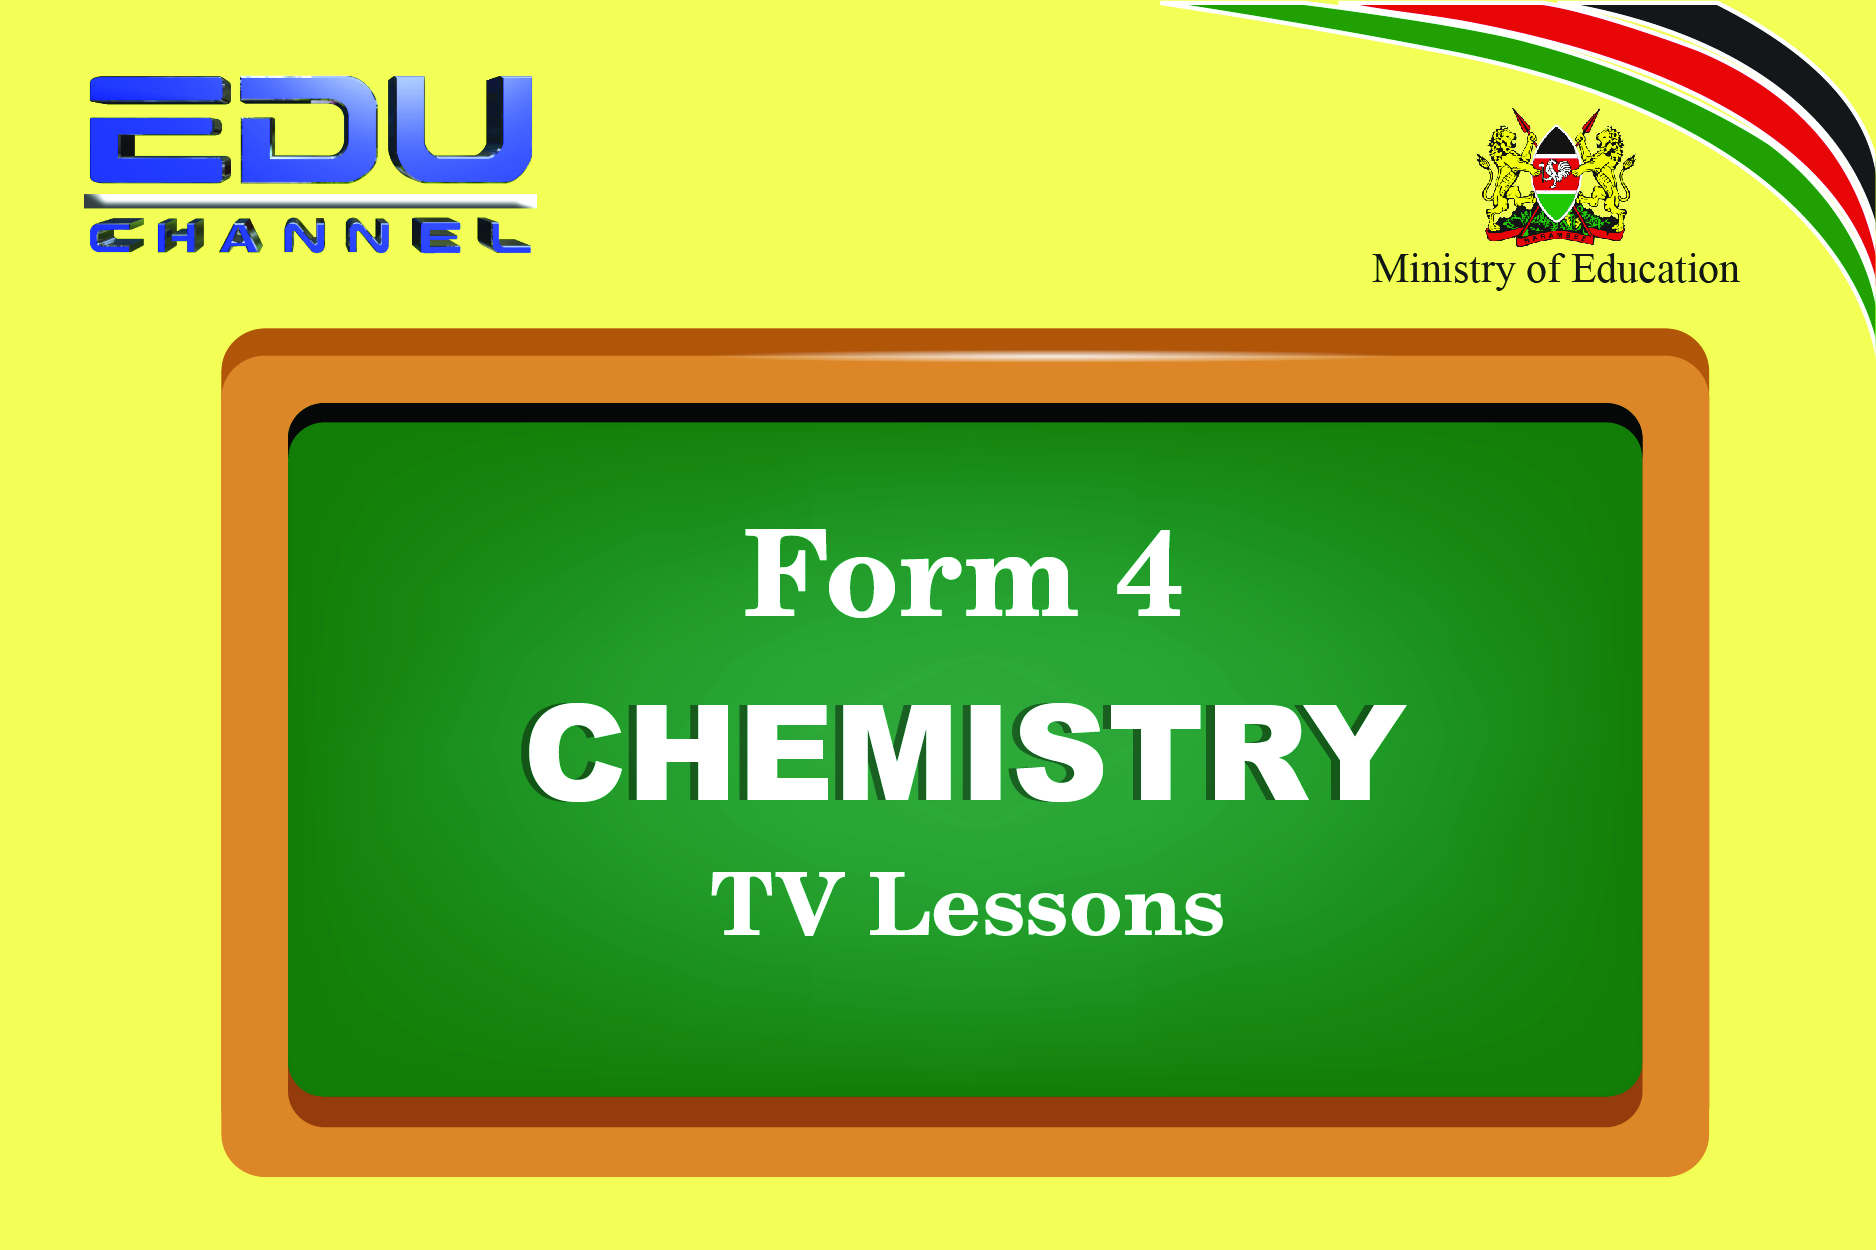 Form 4 Chemistry Lesson 2: Preparations of Salts